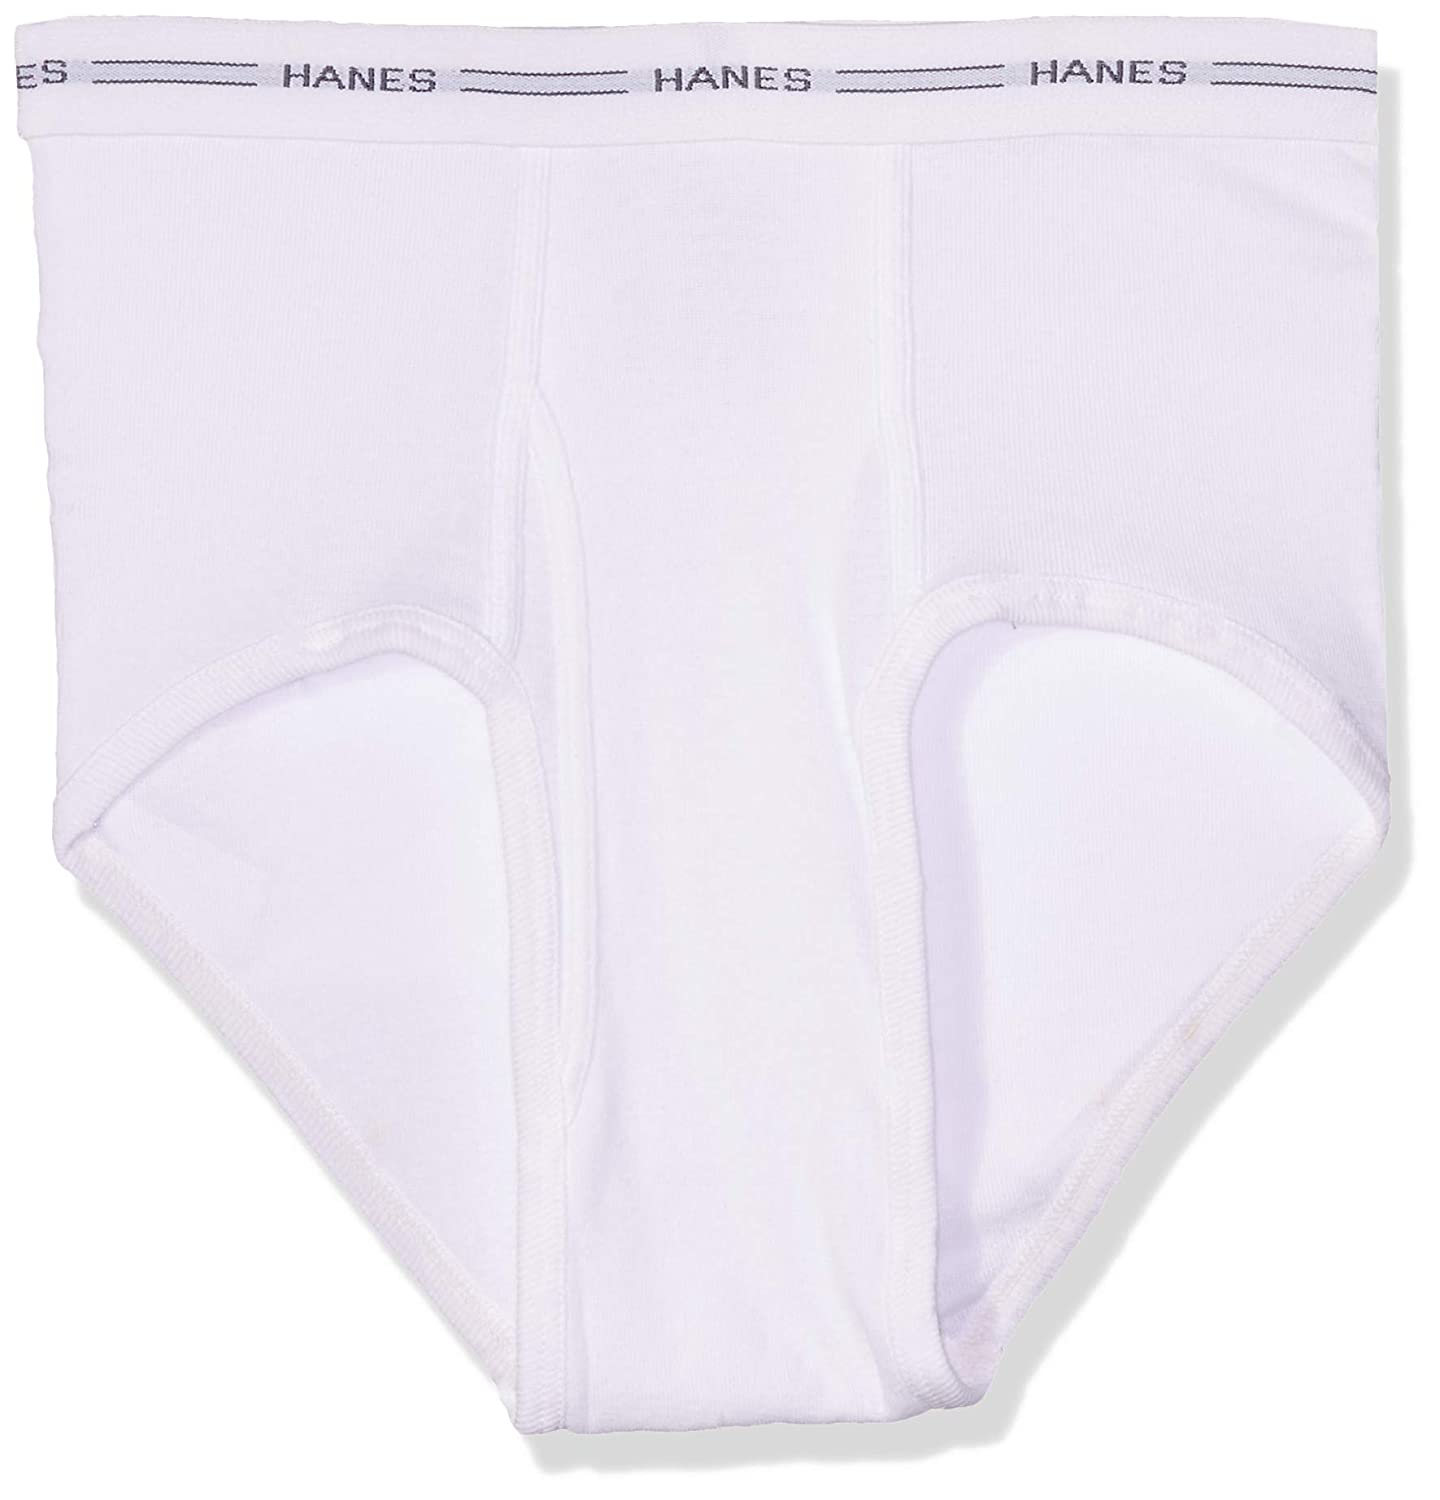 00fb9cffd03a Hanes Men's 7-Pack ComfortSoft Briefs at Amazon Men's Clothing store: